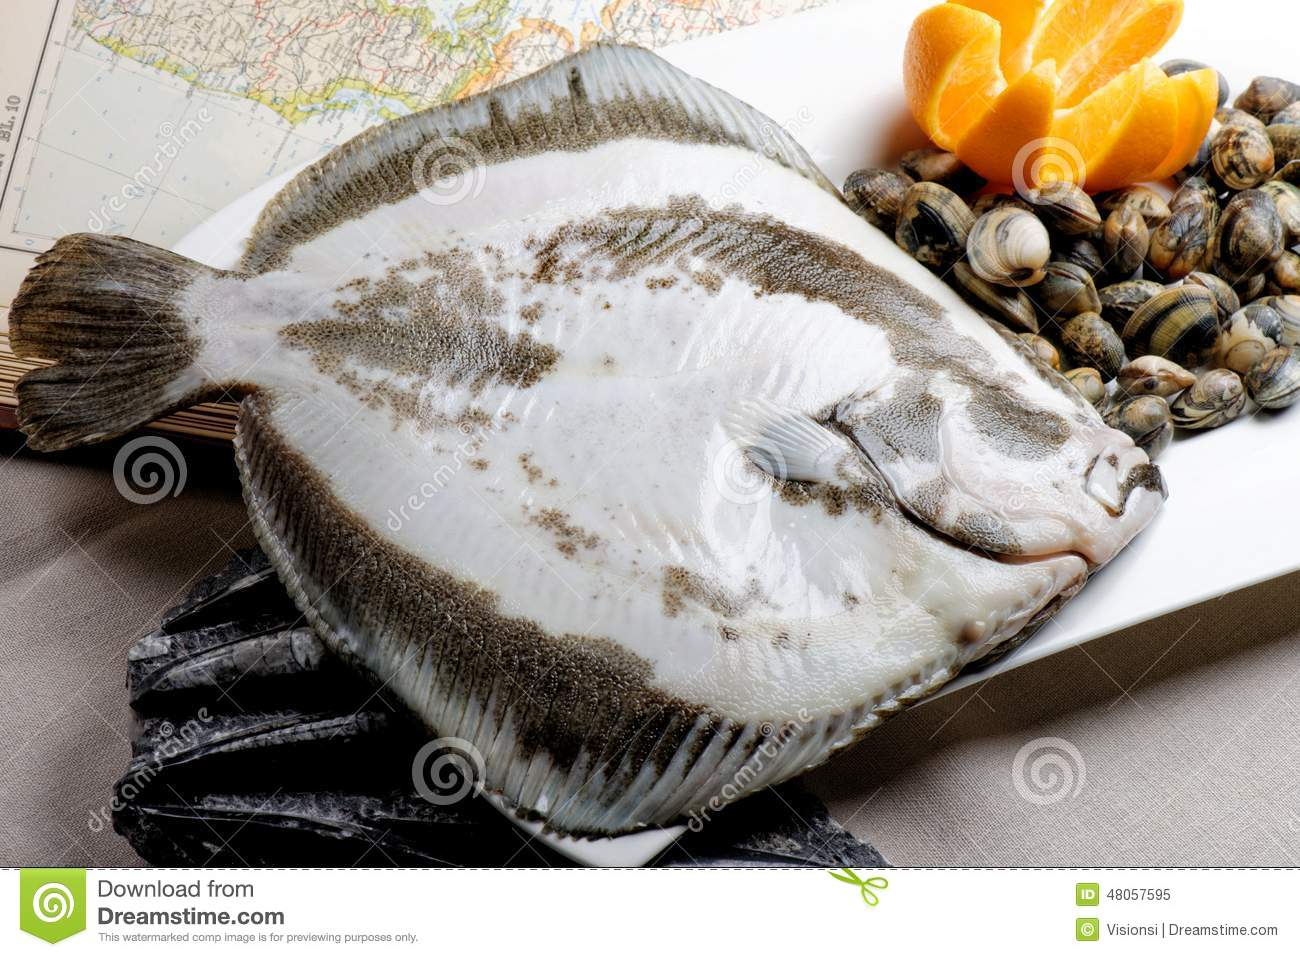 Turbot fish and clams stock image image of appetizer for Turbot fish price